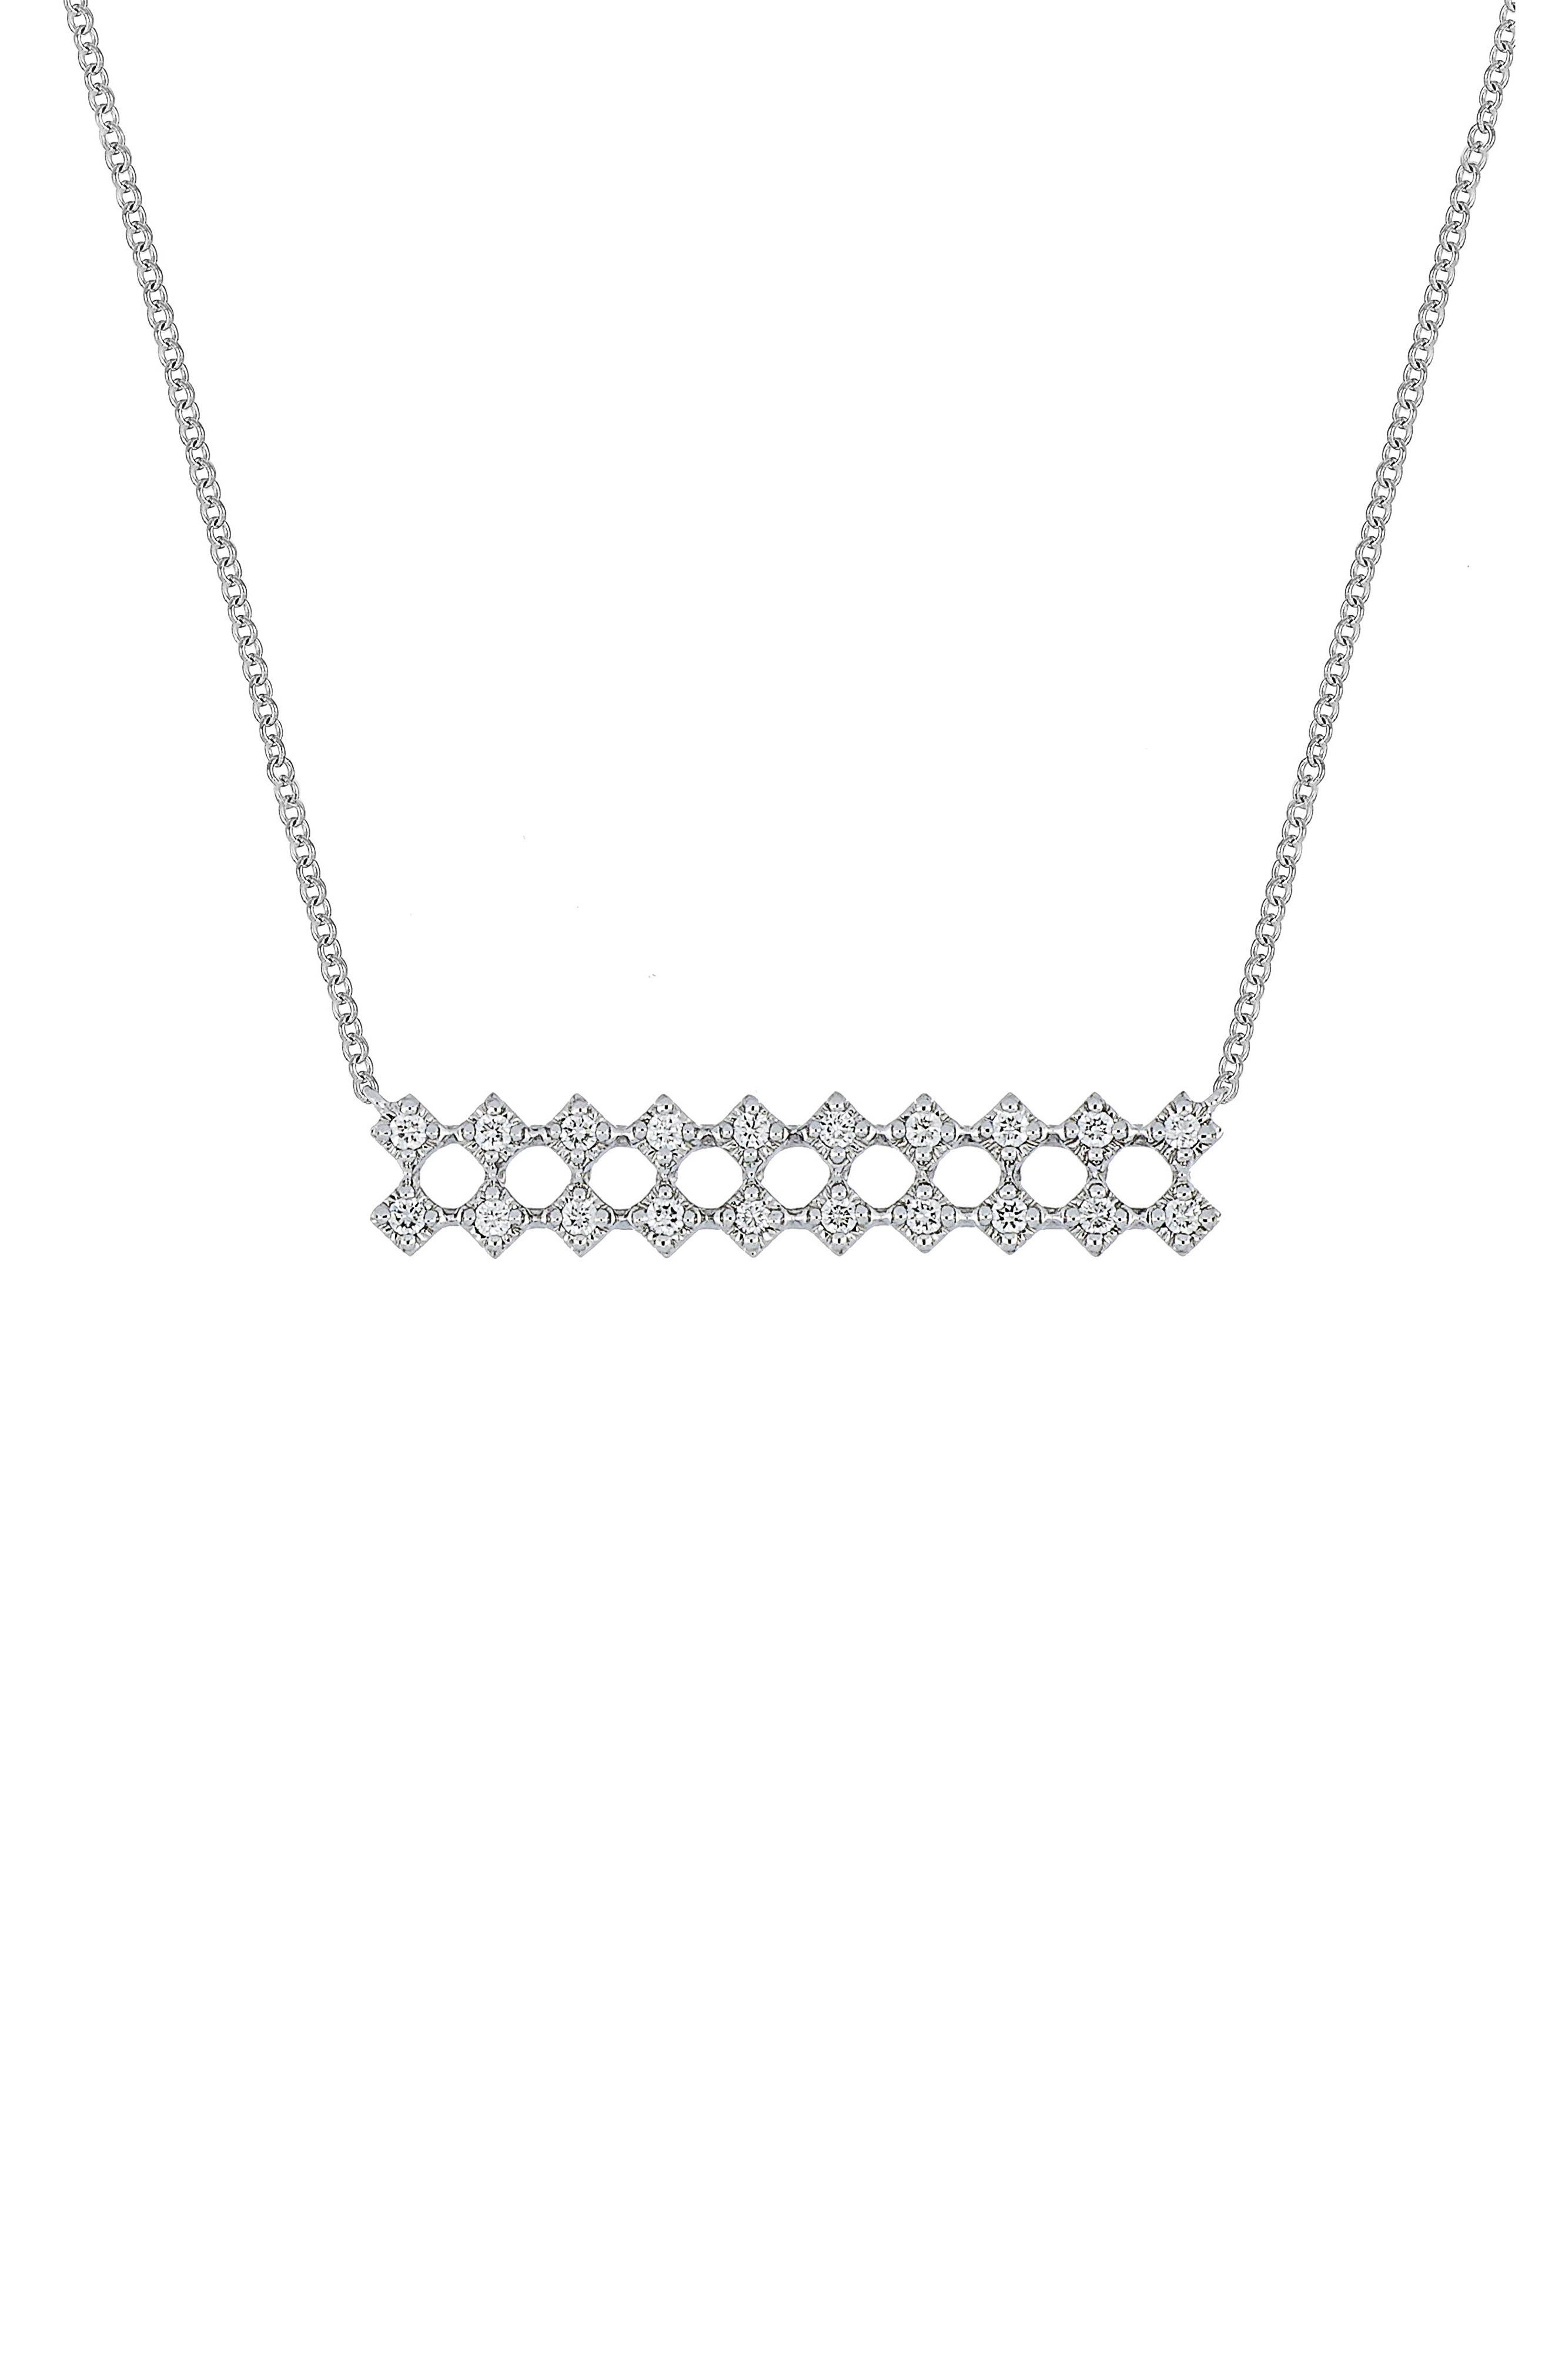 Main Image - Bony Levy Mila Large Bar Pendant Necklace (Nordstrom Exclusive)